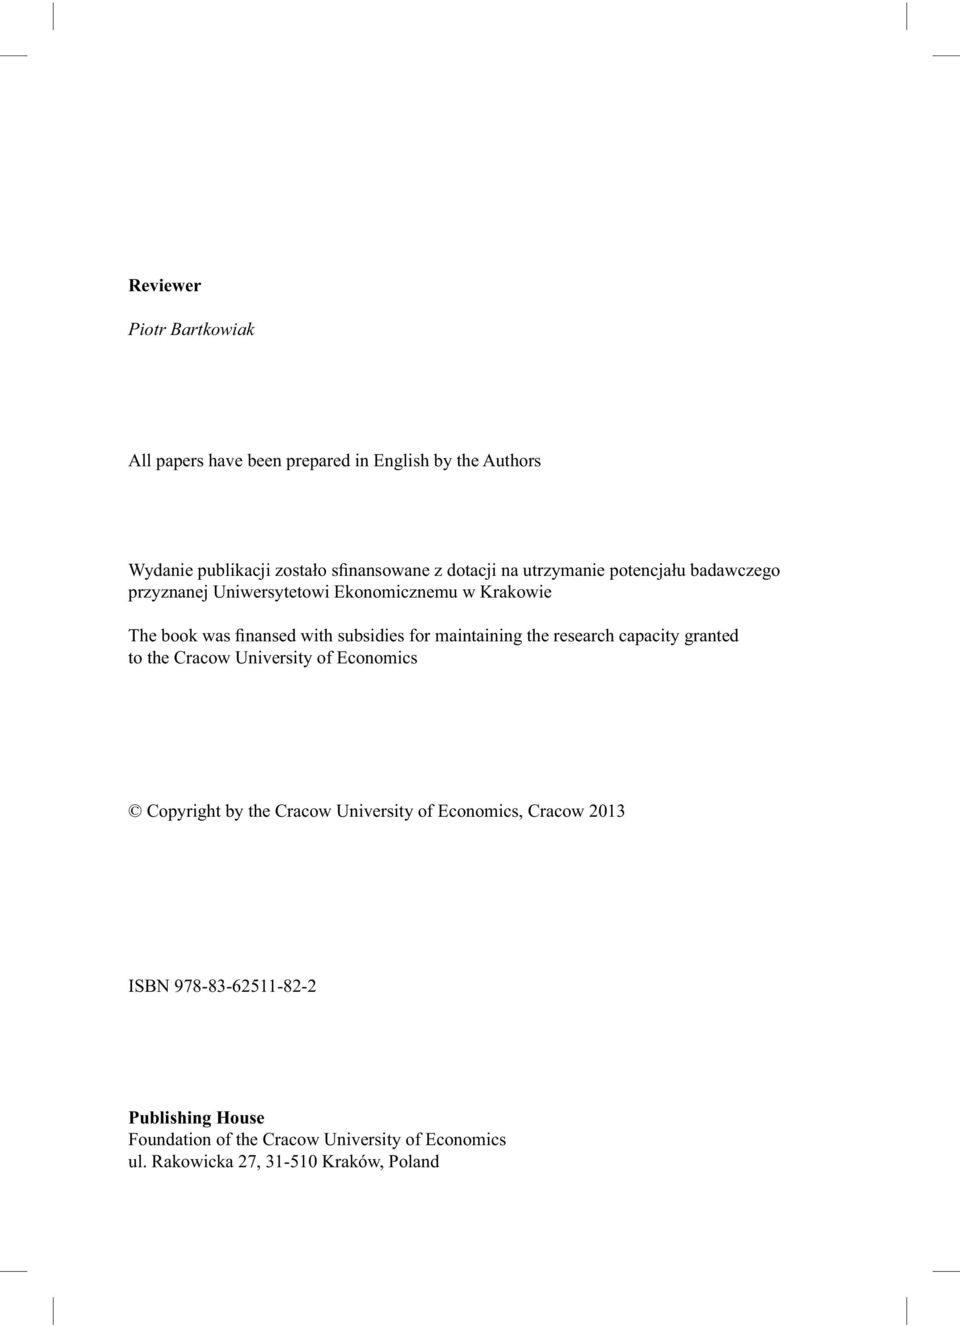 maintaining the research capacity granted to the Cracow University of Economics Copyright by the Cracow University of Economics,